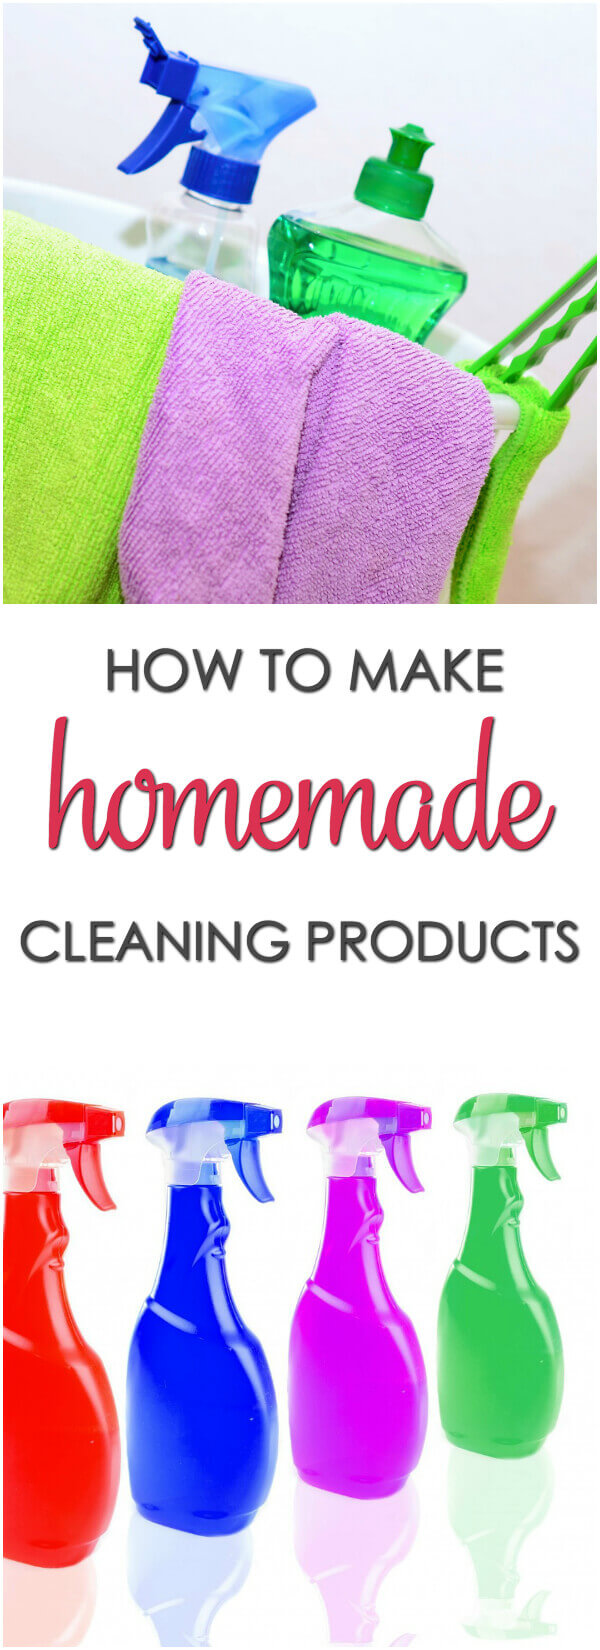 How to make homemade cleaning products - get 15 homemade household cleaning products you can use right now